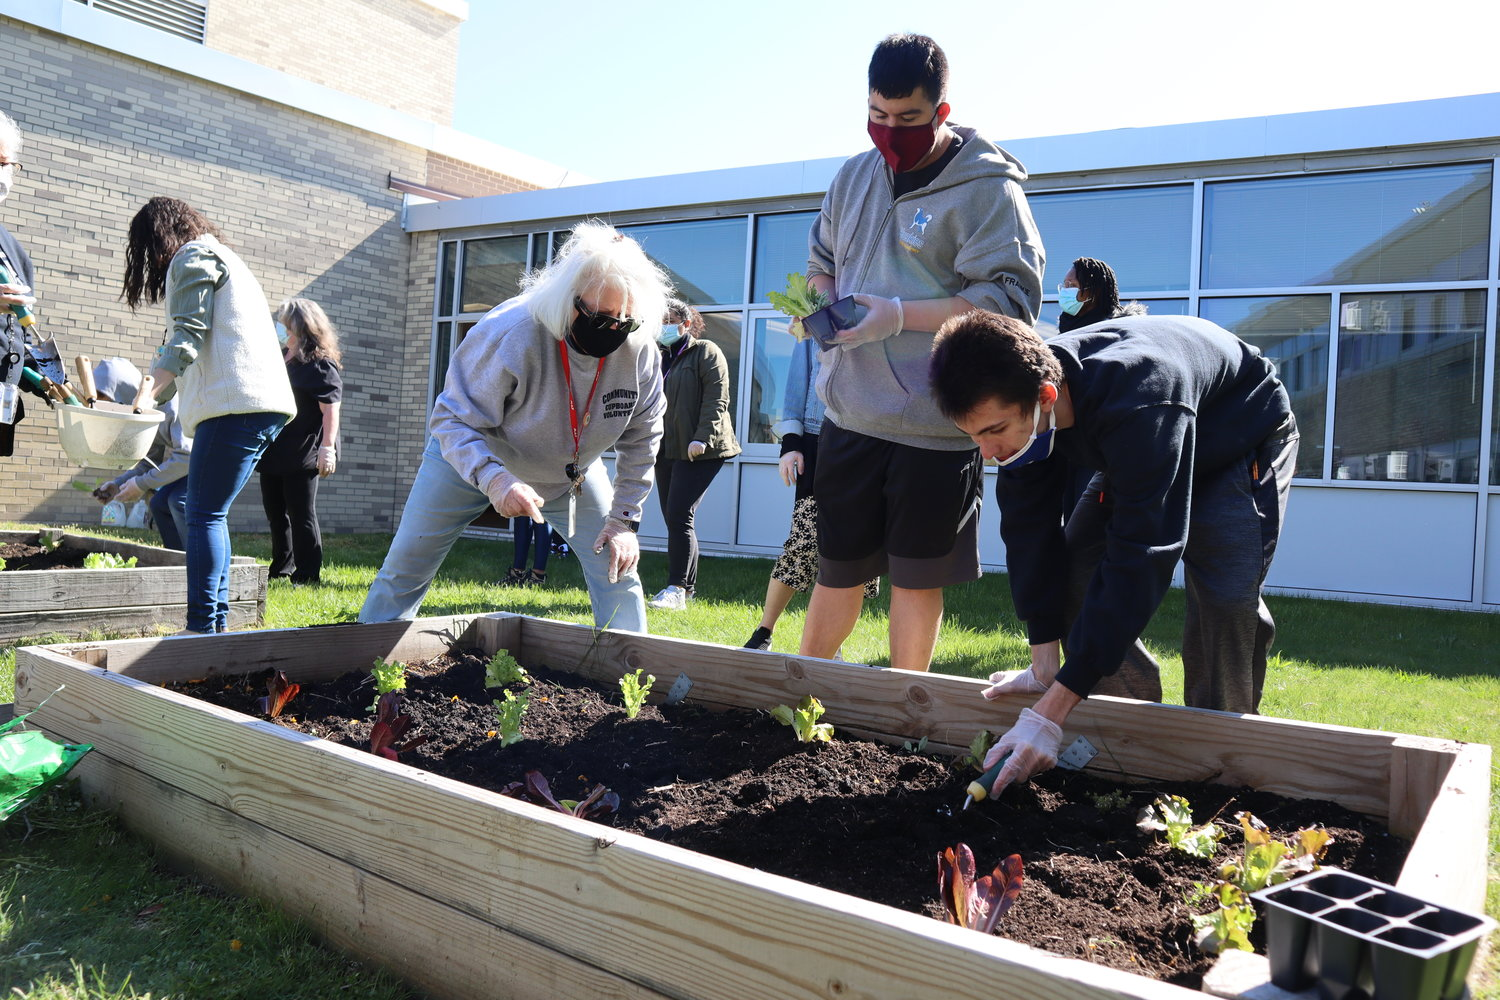 Meadowbrook Alternative Program Principal Susan Ellinghaus, left, helped students James and Jared beautify the Brookside School's courtyard for an Earth Day celebration.